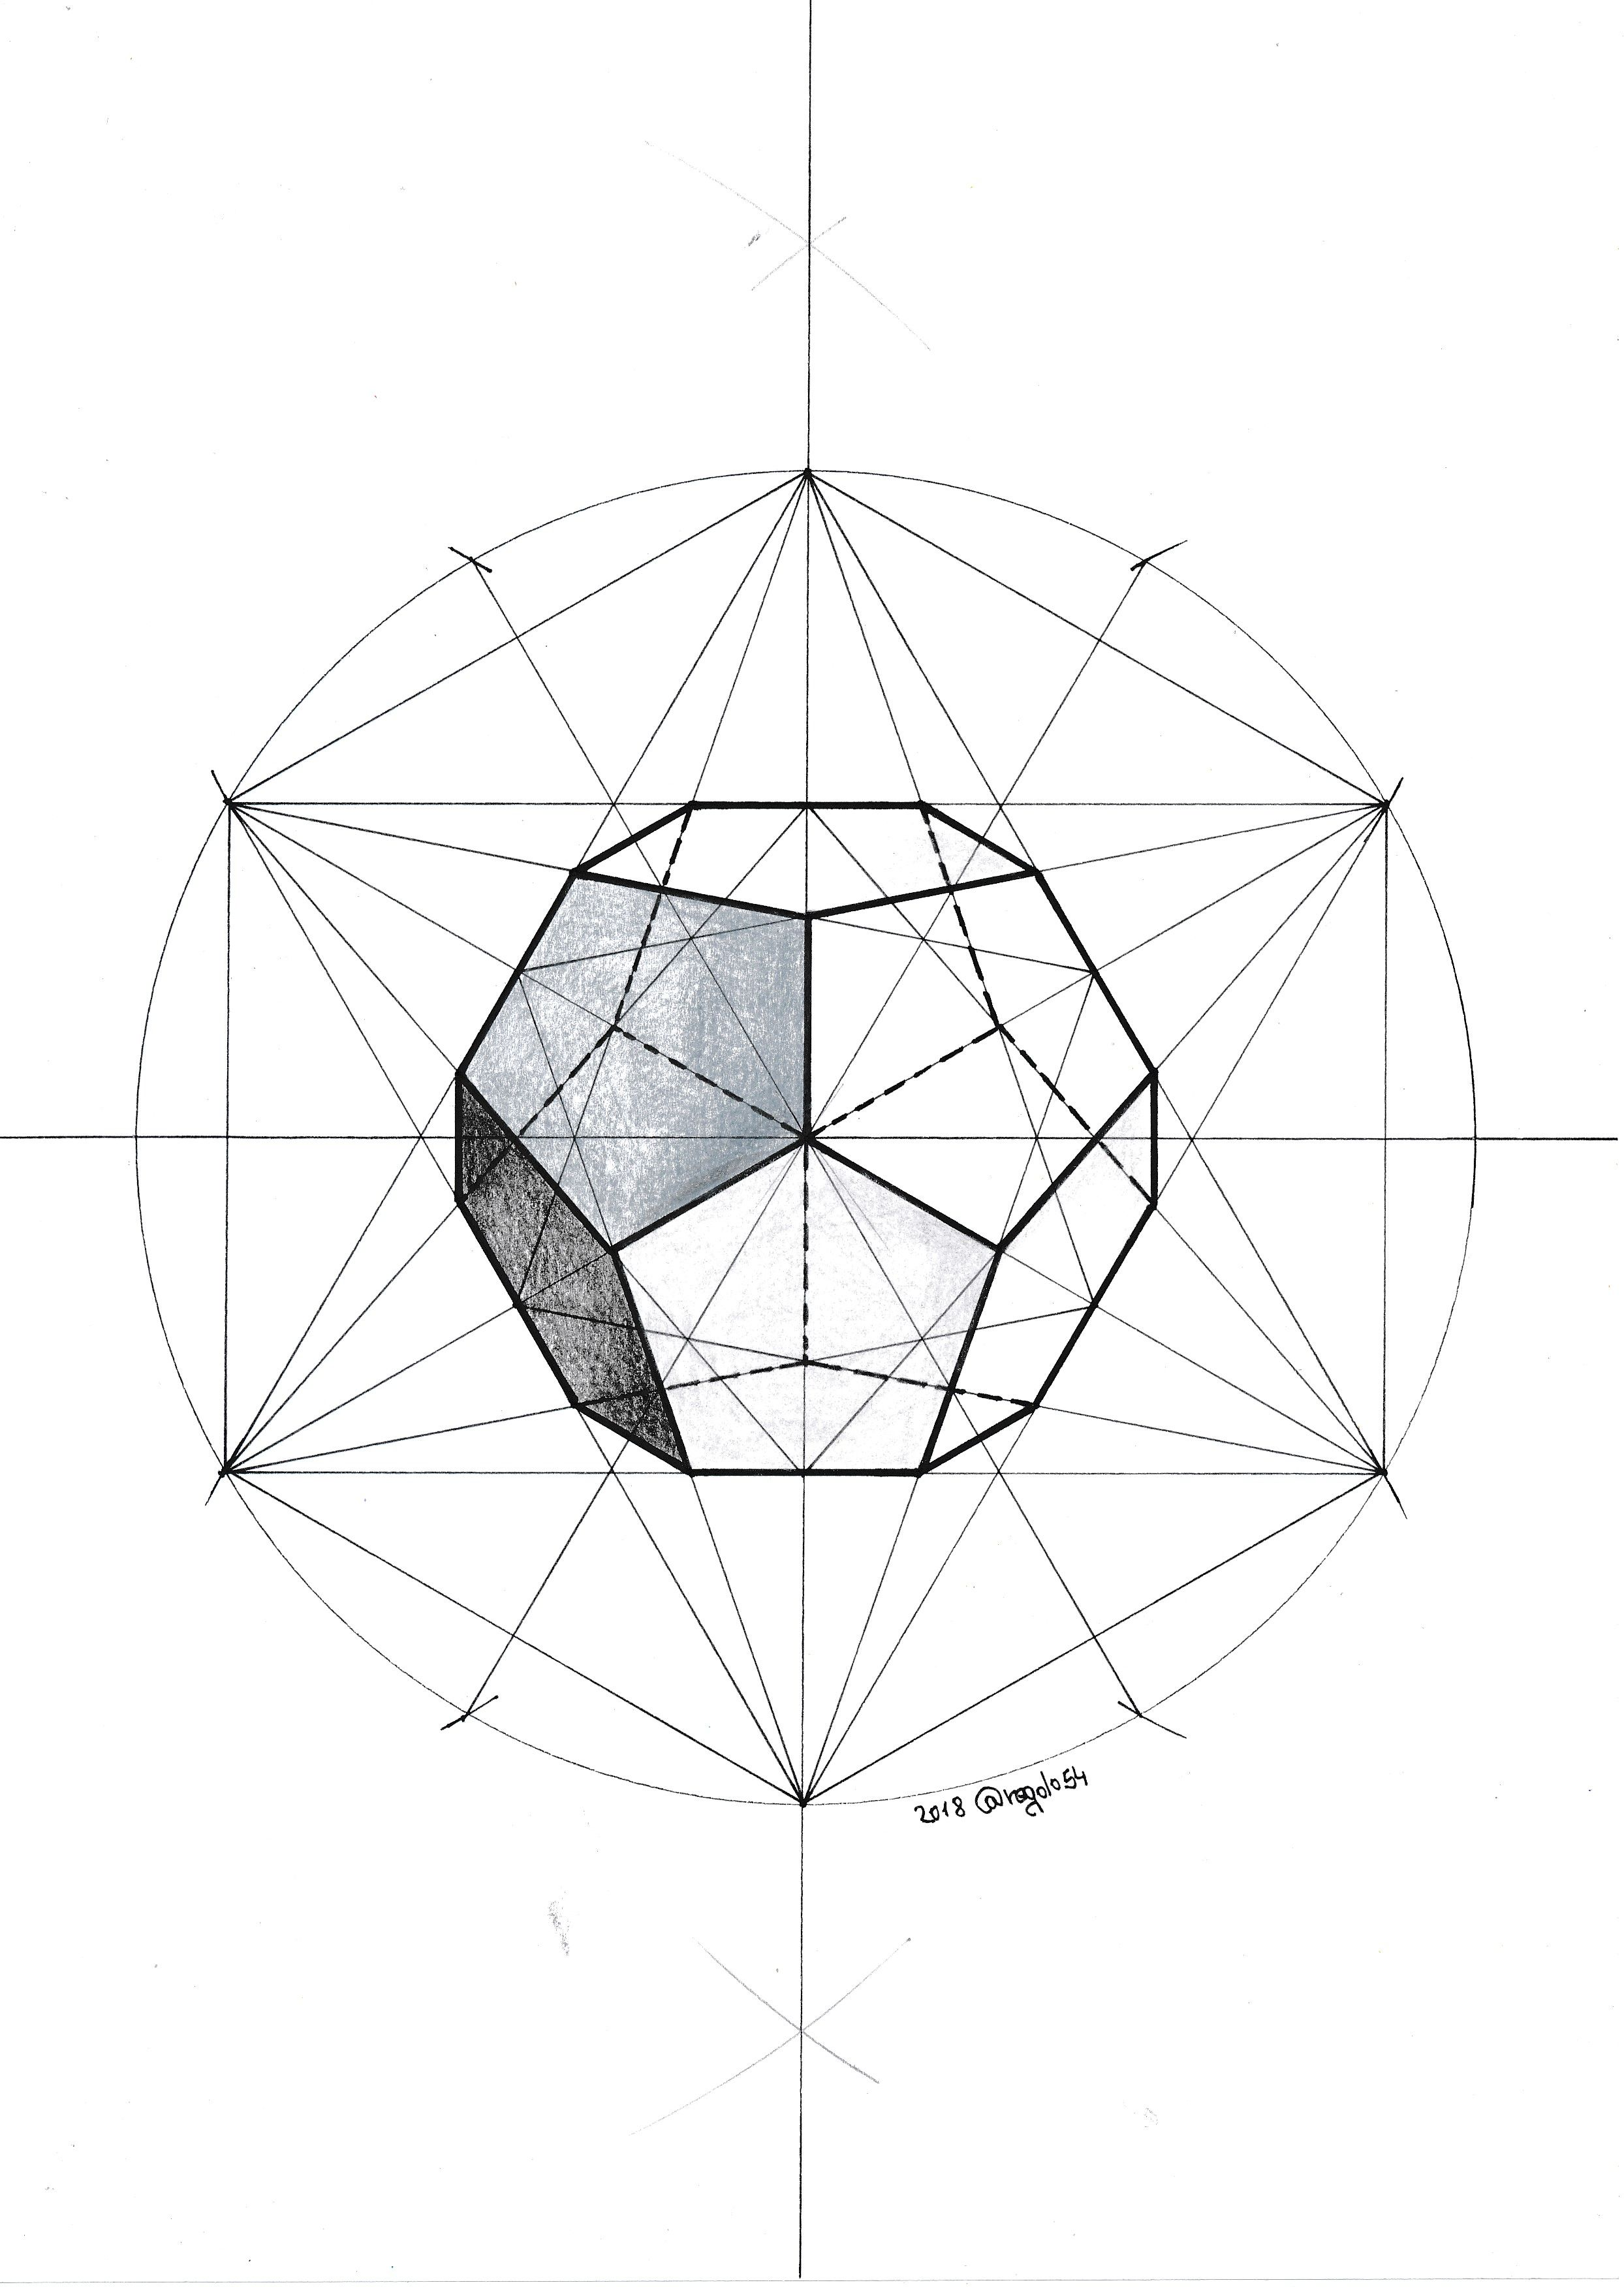 #dodecahedron #solid #polyhedra #geometry #symmetry #